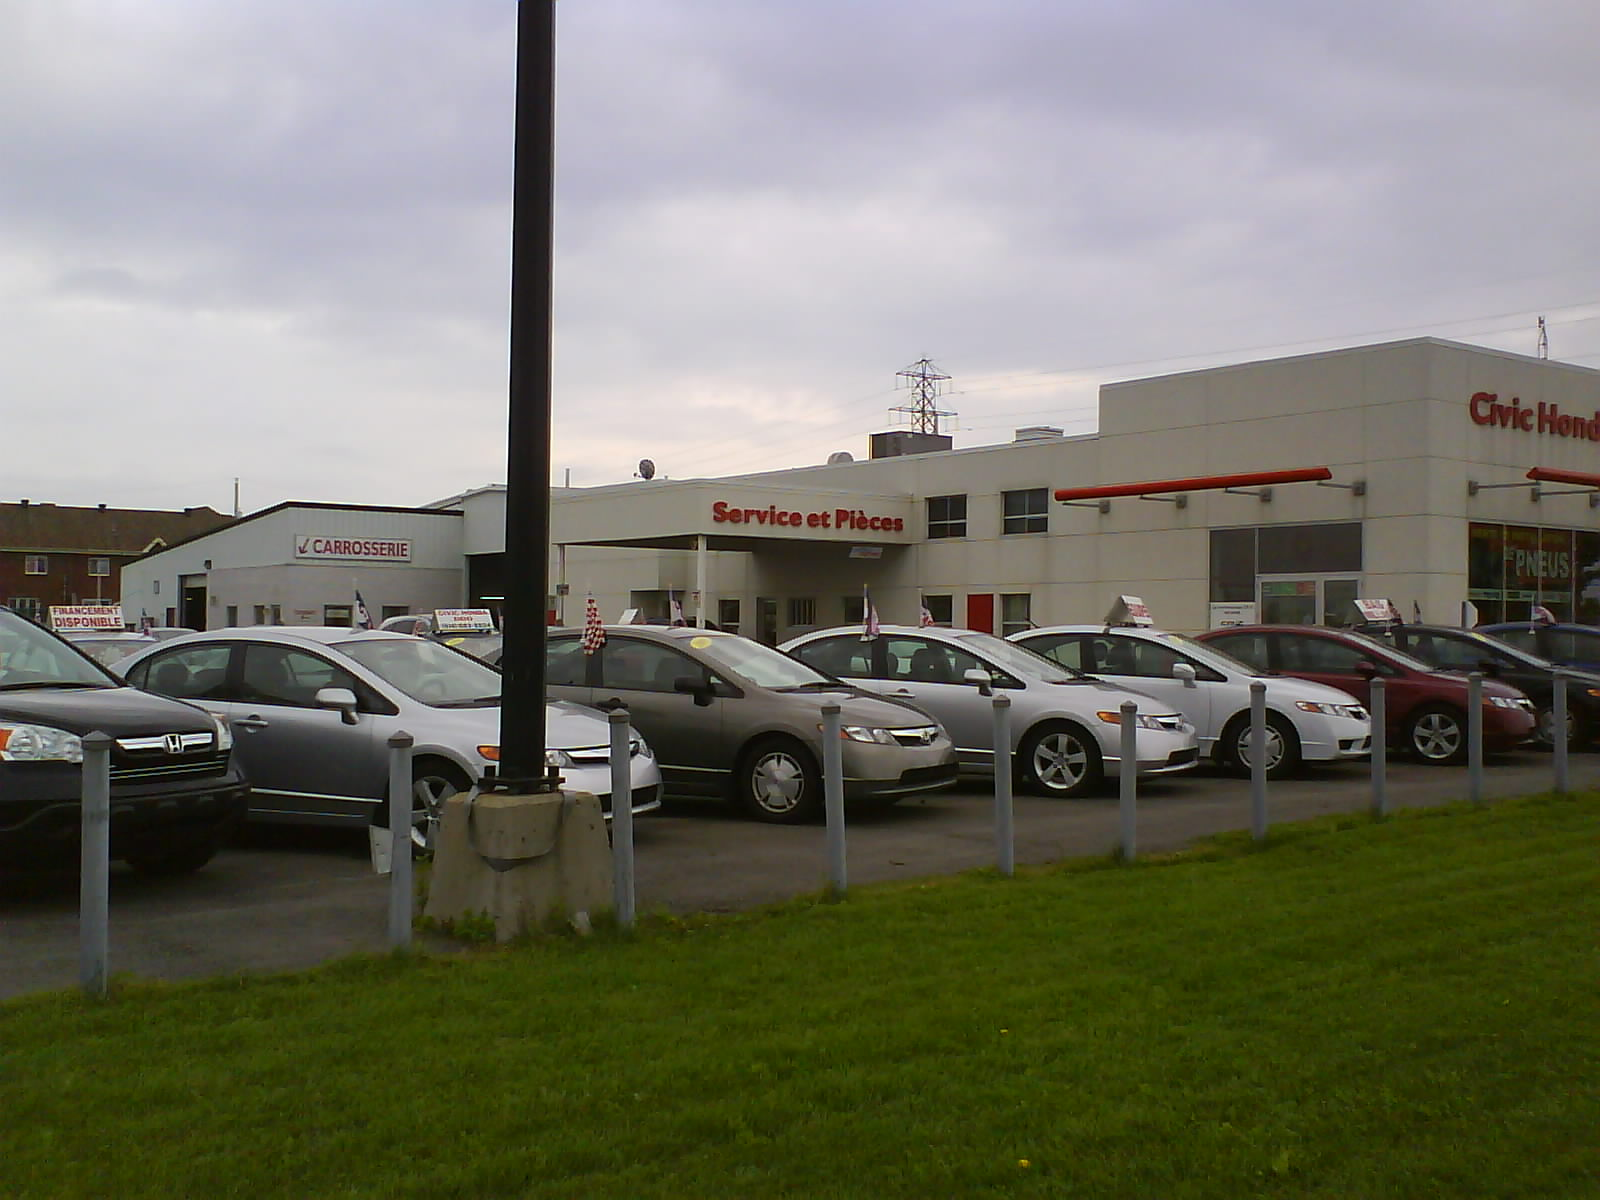 Used Car Dealers In Council Bluffs Iowa With Reviews